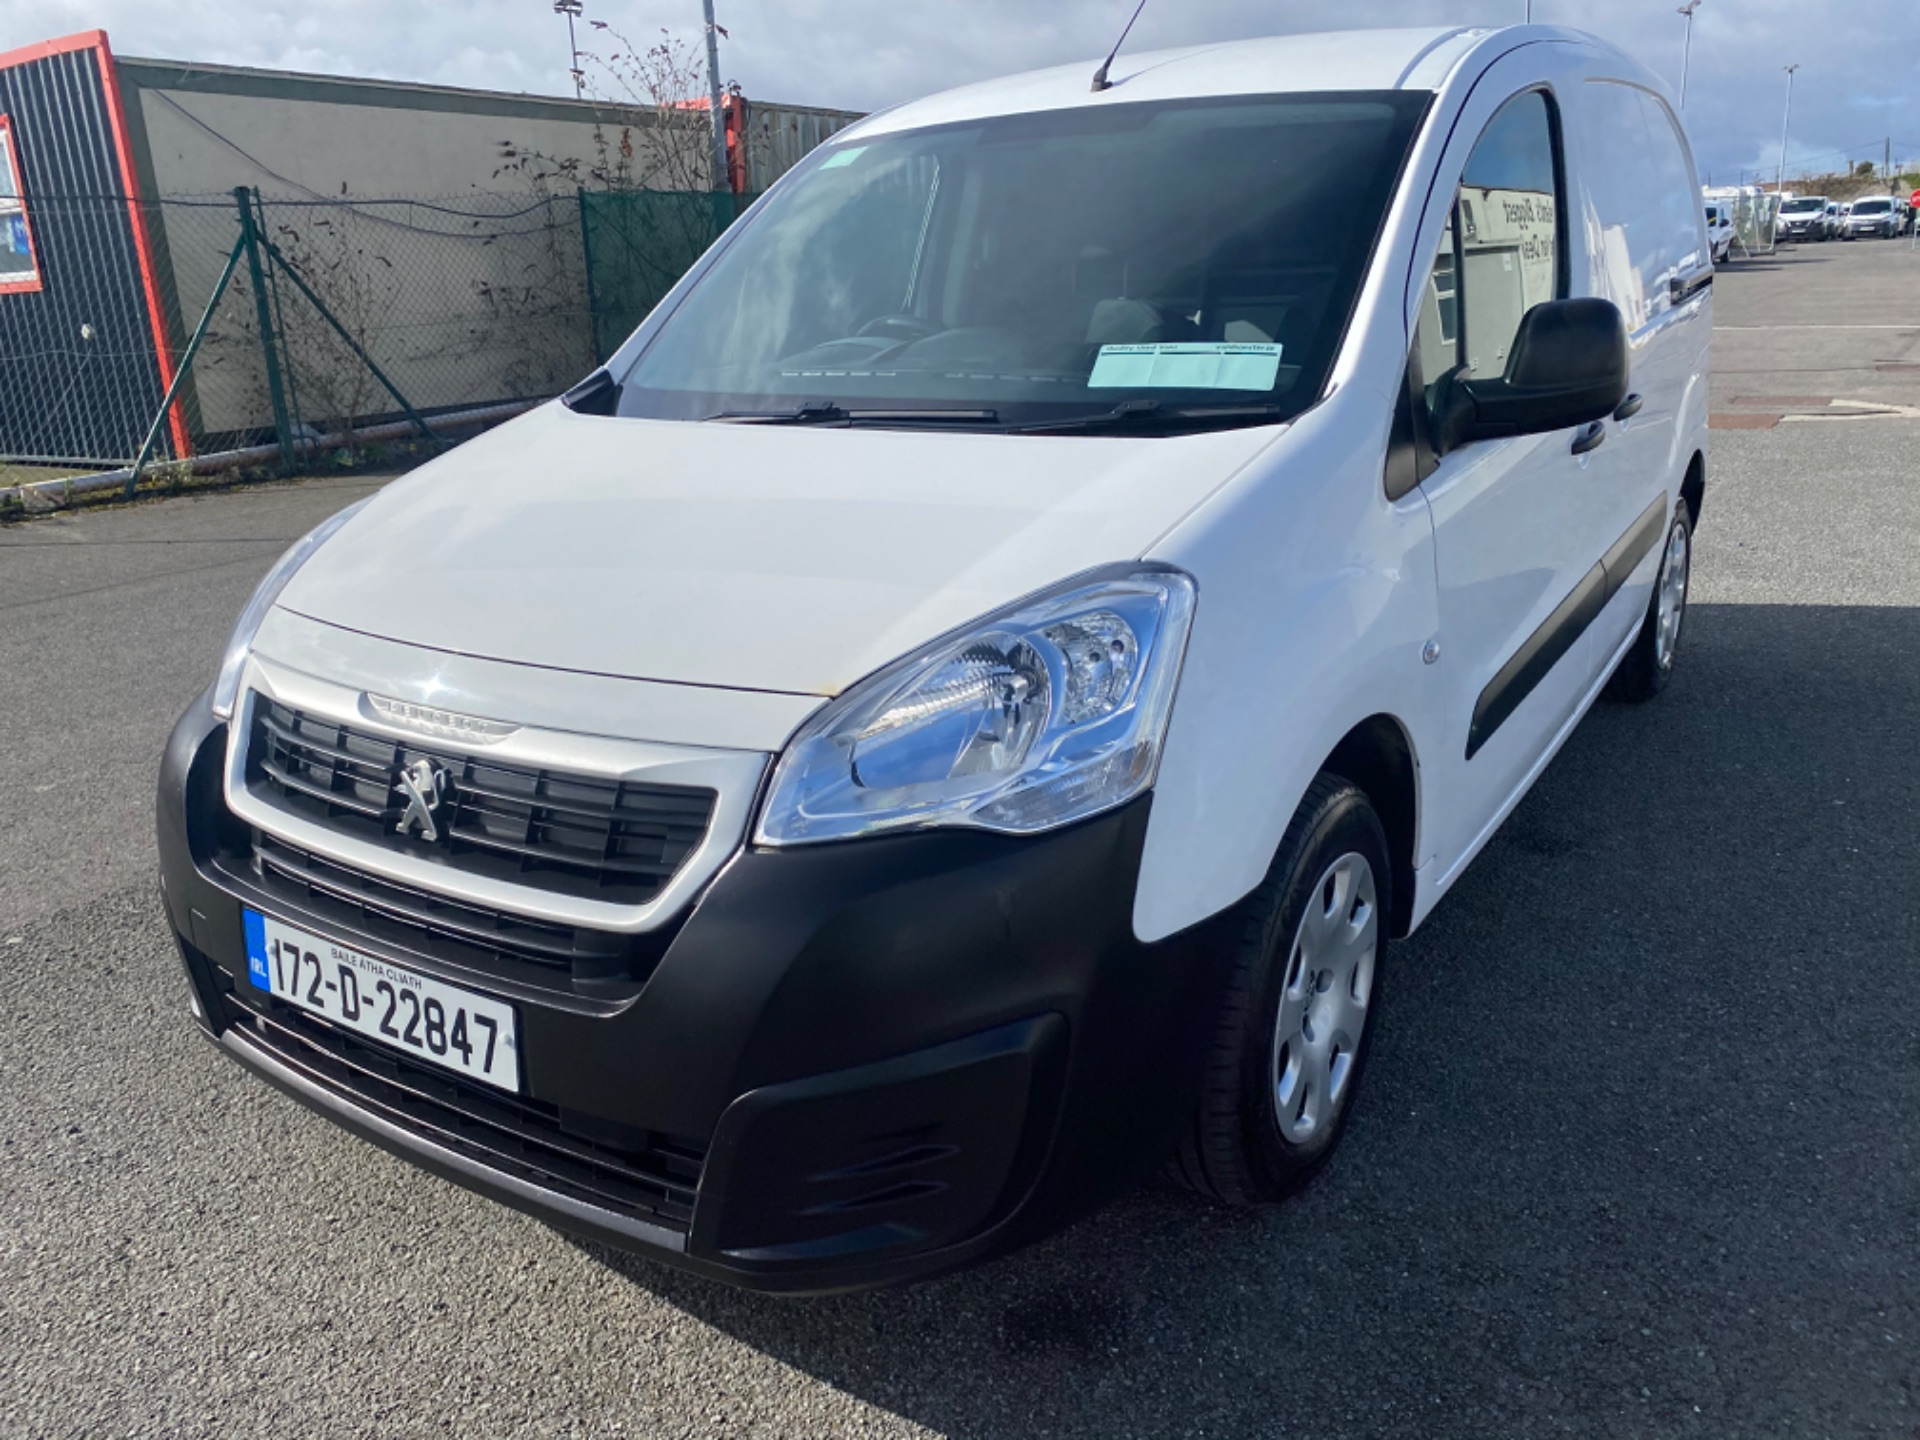 2017 Peugeot Partner Access 1.6 Blue HDI 75 Side DO (172D22847) Image 3